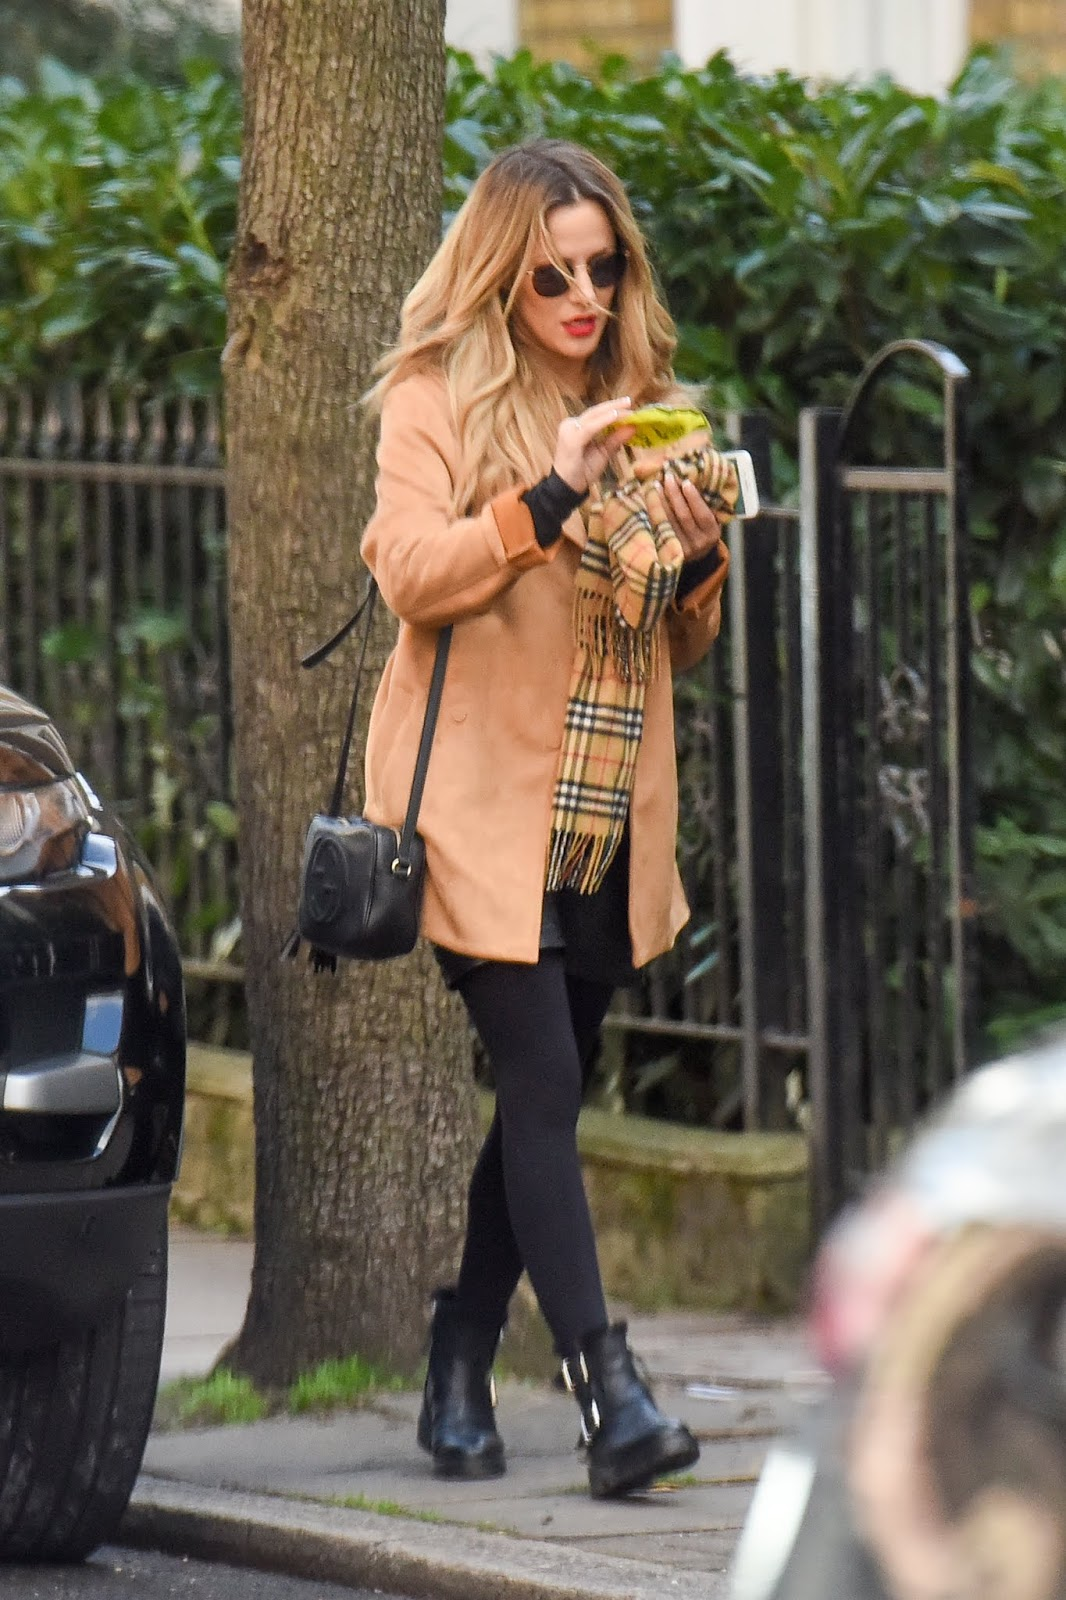 Caroline Flack gets a parking ticket on her Range Rover while out and about running errands in London  - 02/19/2019